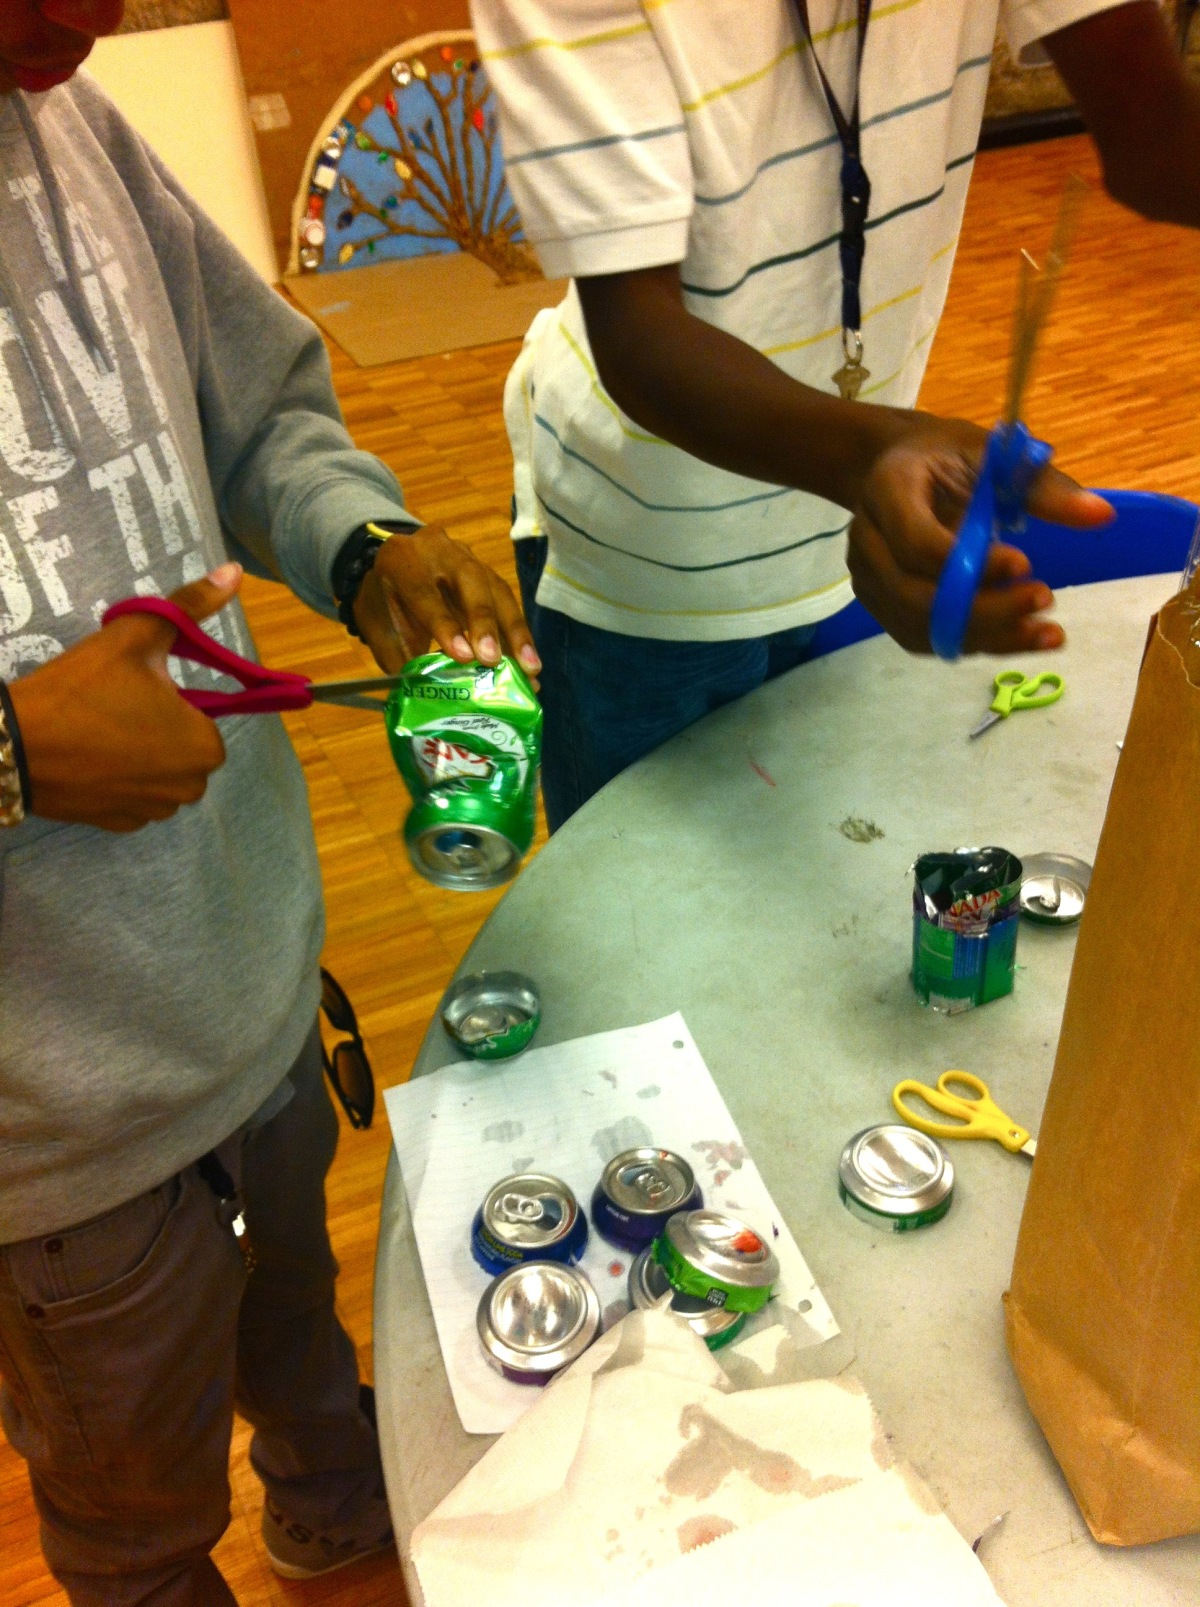 do_good_students_create_art_from_recycled_goods_2662.jpg